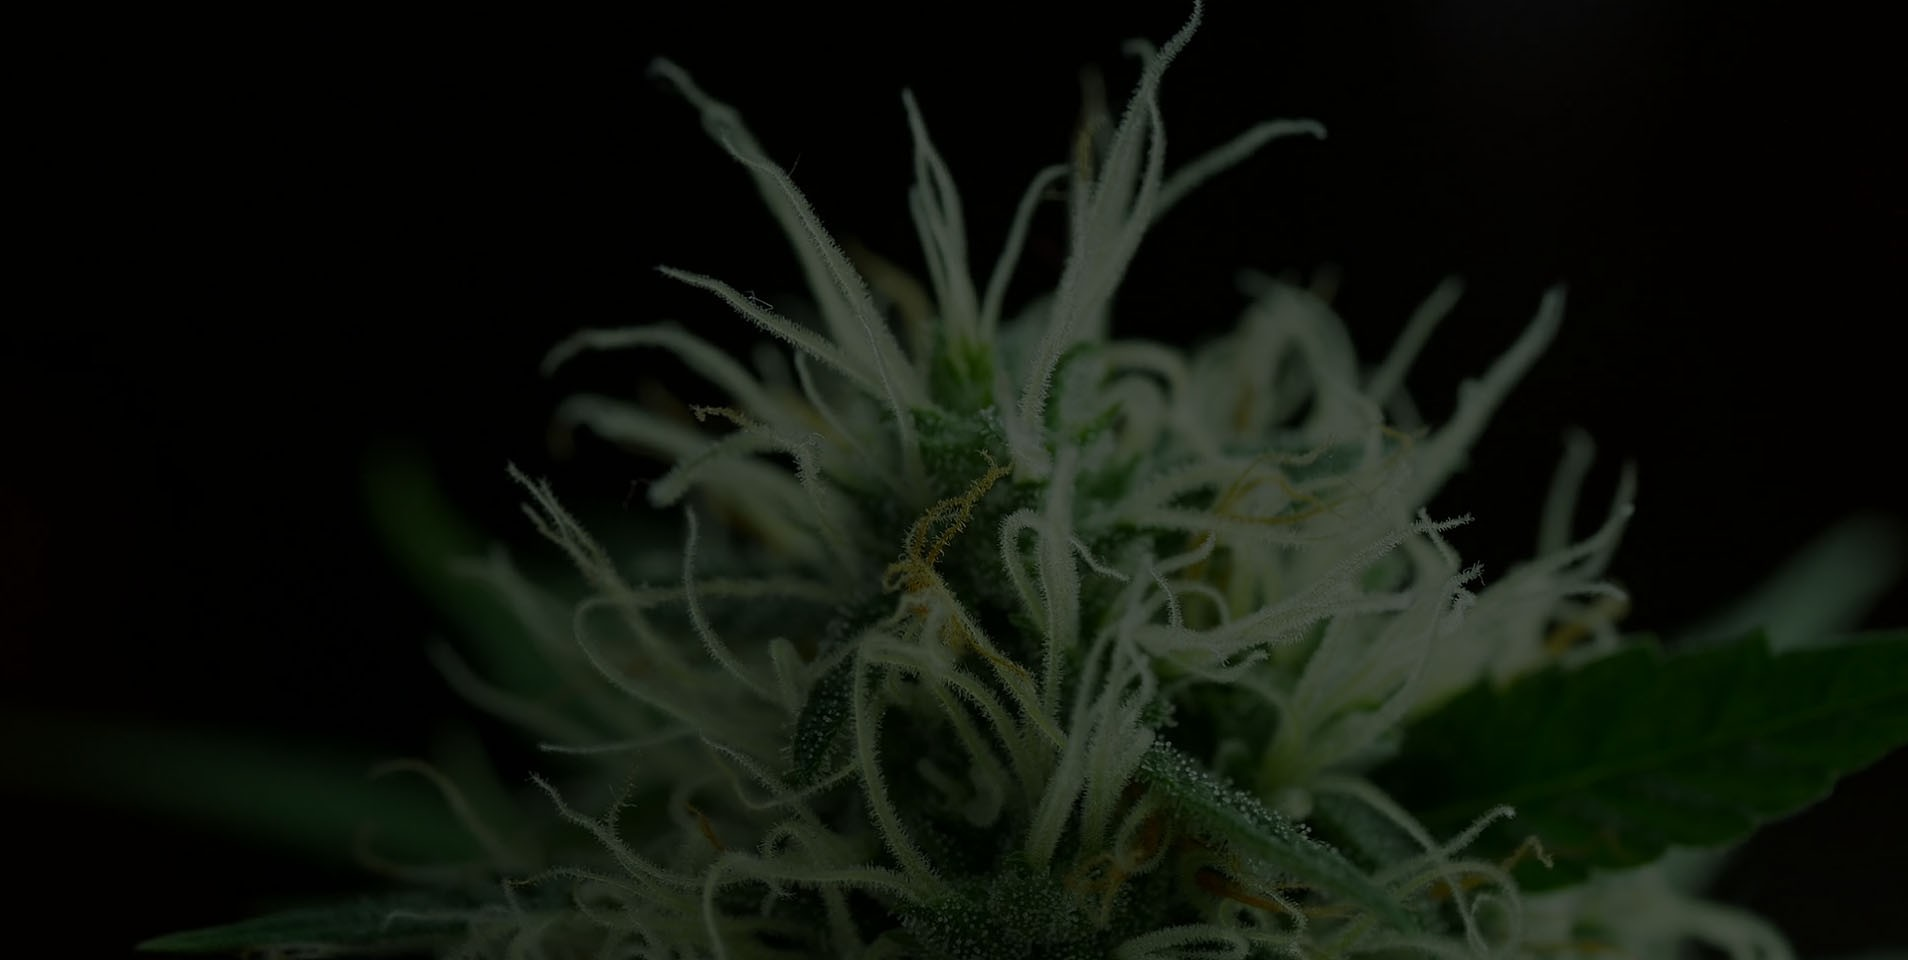 What's Next? Step-By-Step Guide on When to Harvest Cannabis